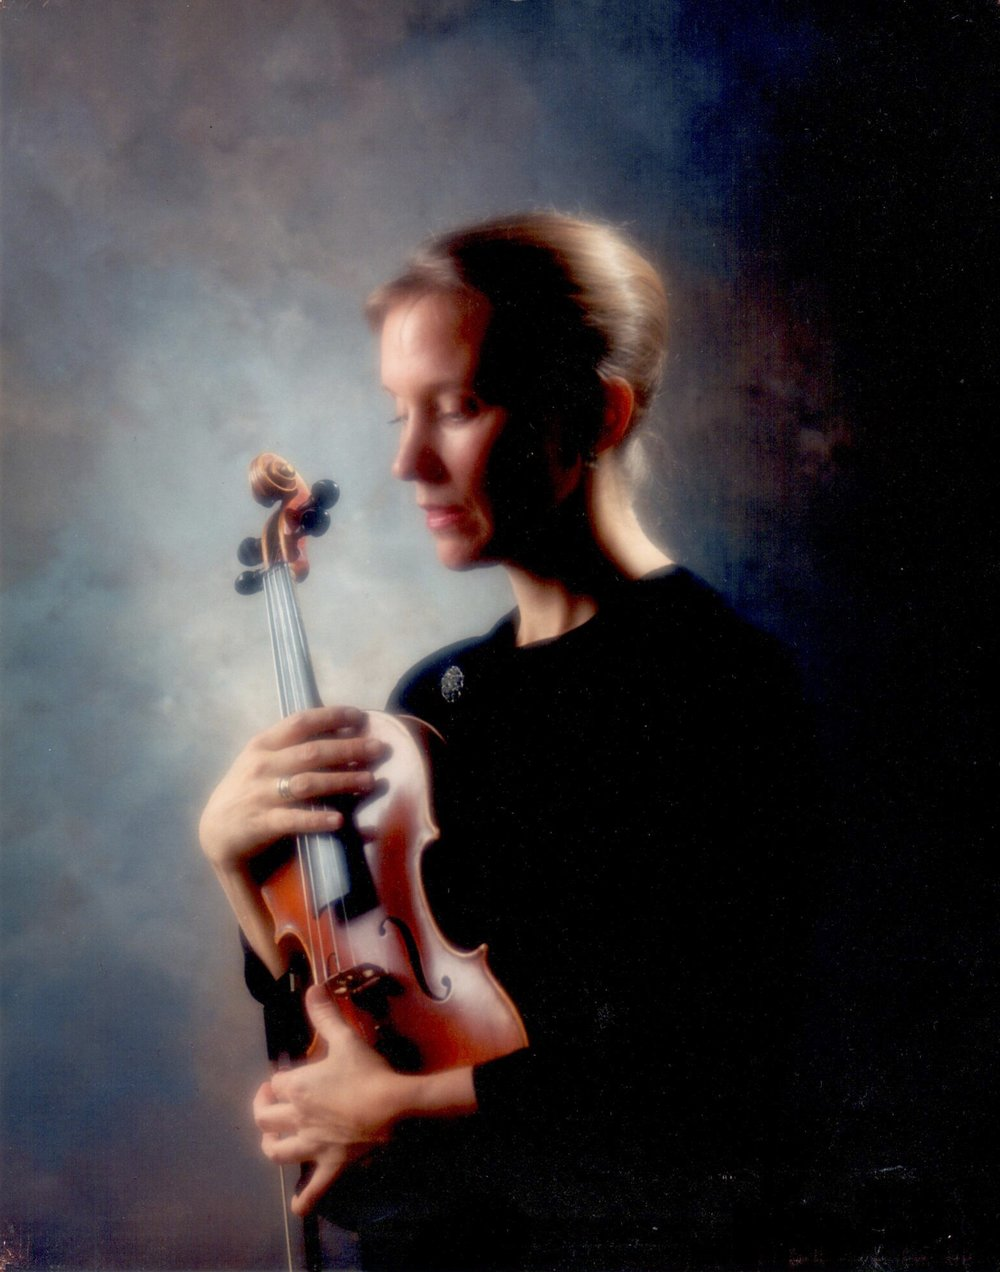 Jean Tweet     Jean Ellen Tweet has a degree in violin performance from Northern Illinois University and has performed with numerous regional groups including Sinfonia Concertant and the Ballet Orchestra in Milwaukee, the Rockford Symphony, and others. She was a member of the Illinois Symphony and Chamber Orchestra for 14 years and currently plays chamber music around central Illinois. While in Minneapolis, she earned her Suzuki Teacher Certificate from MacPhail School of Music and took courses at Stevens Point Suzuki Camps including study with Sinichi Suzuki. Jean has studios in Elkhart and Springfield teaching violin and viola. Jean maintains a busy private lesson schedule.  Jean instructs Junior Strings and Starter Strings.